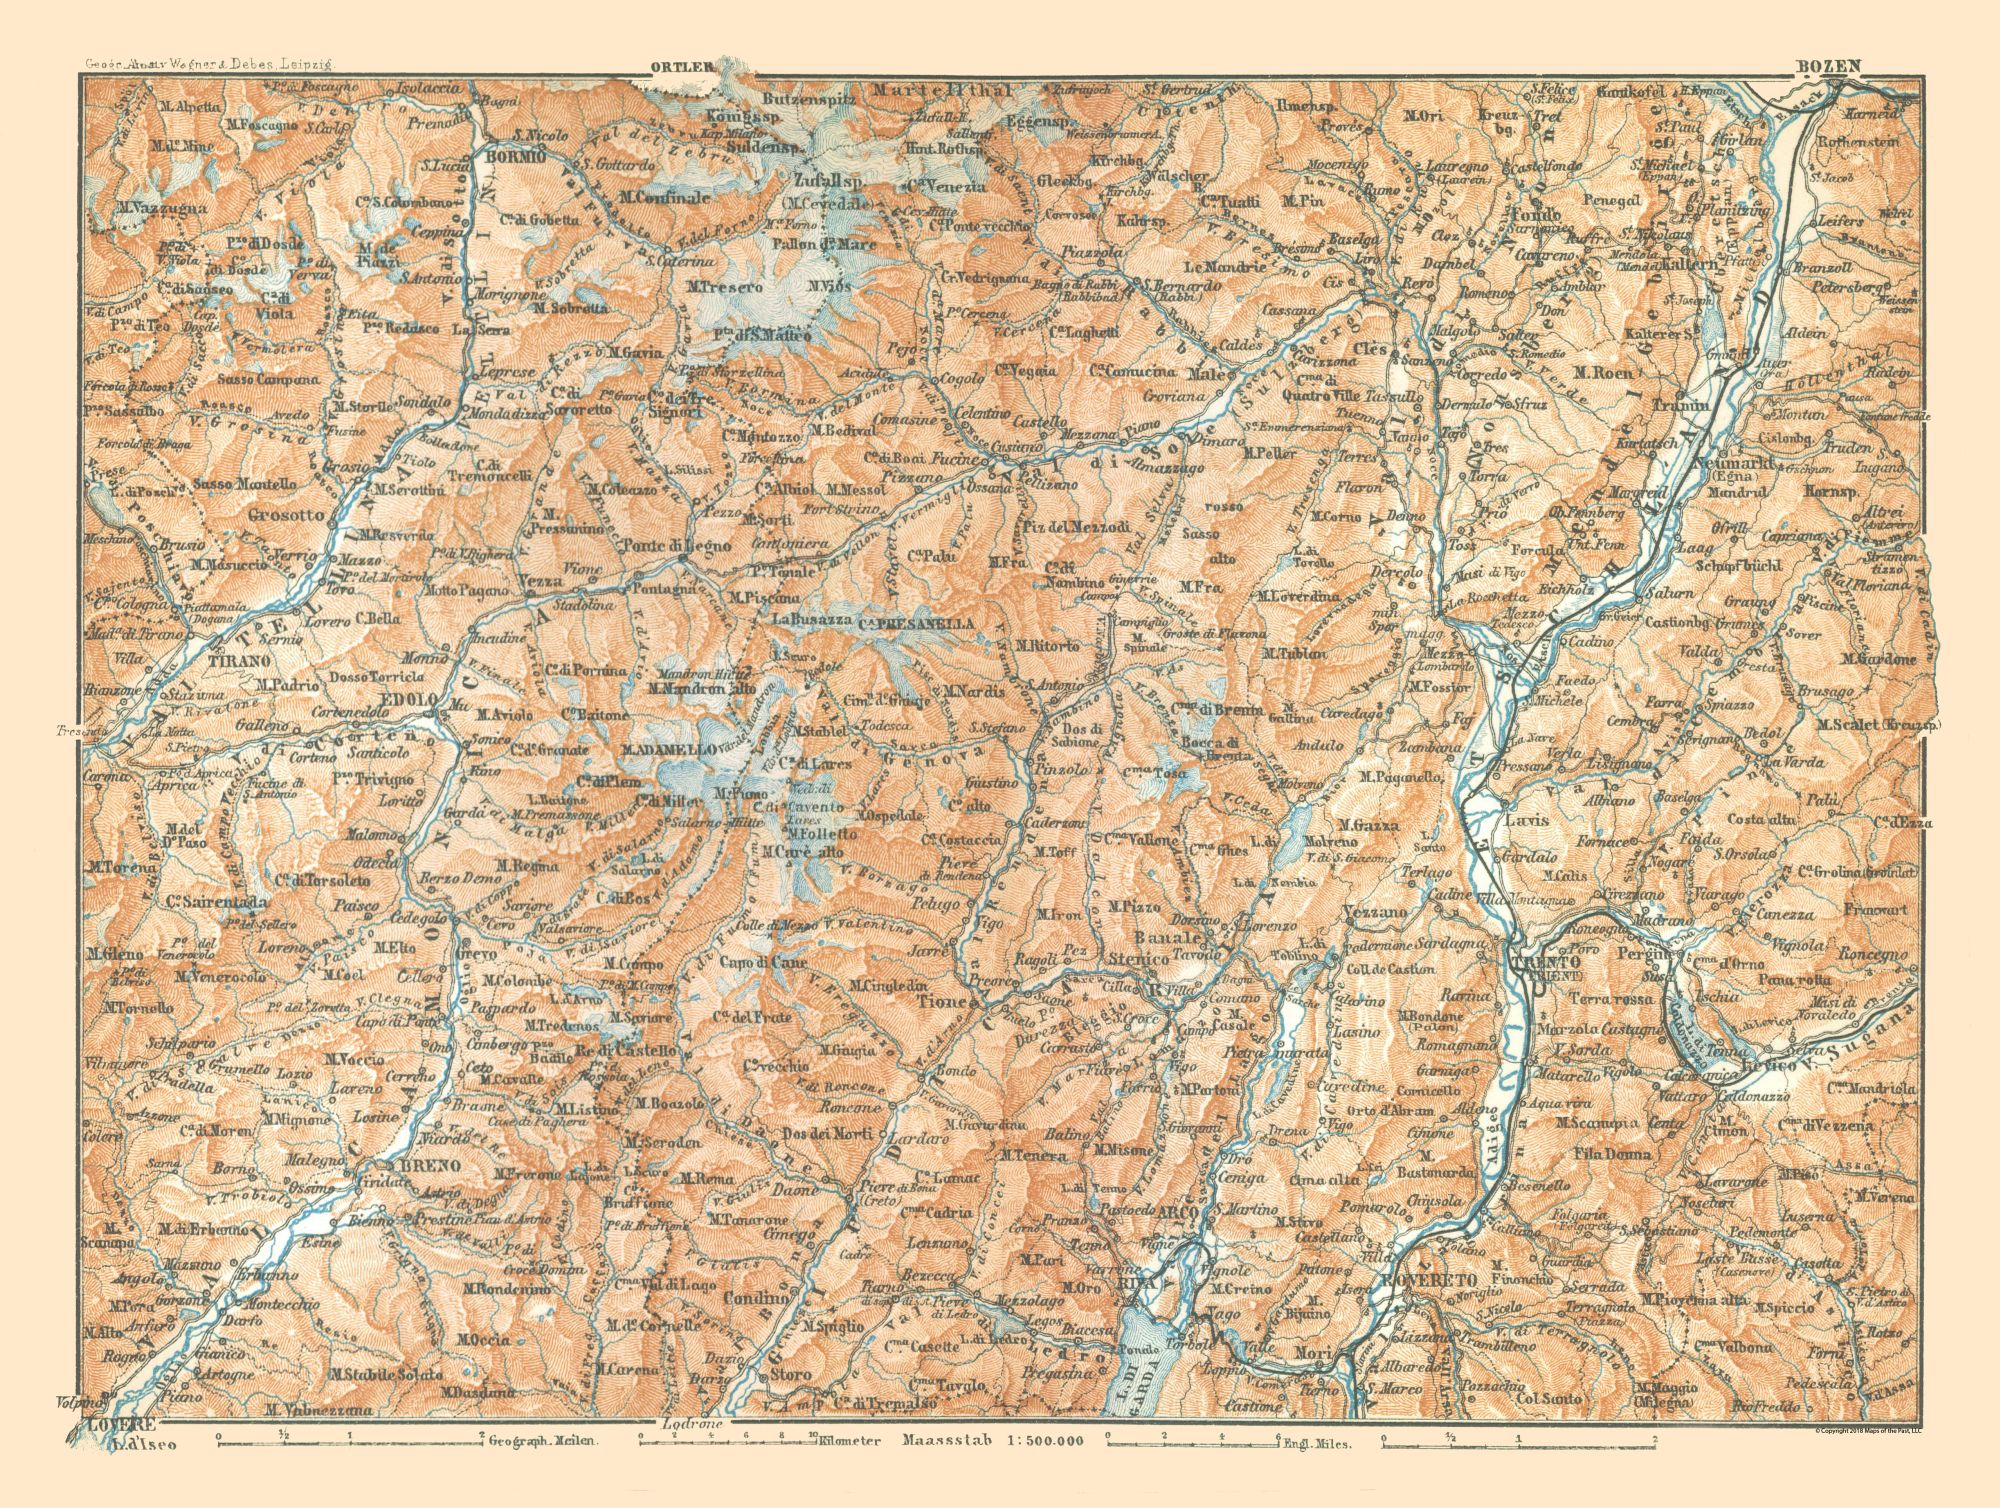 Map Of North Italy.International Map North Italy Baedeker 1896 30 50 X 23